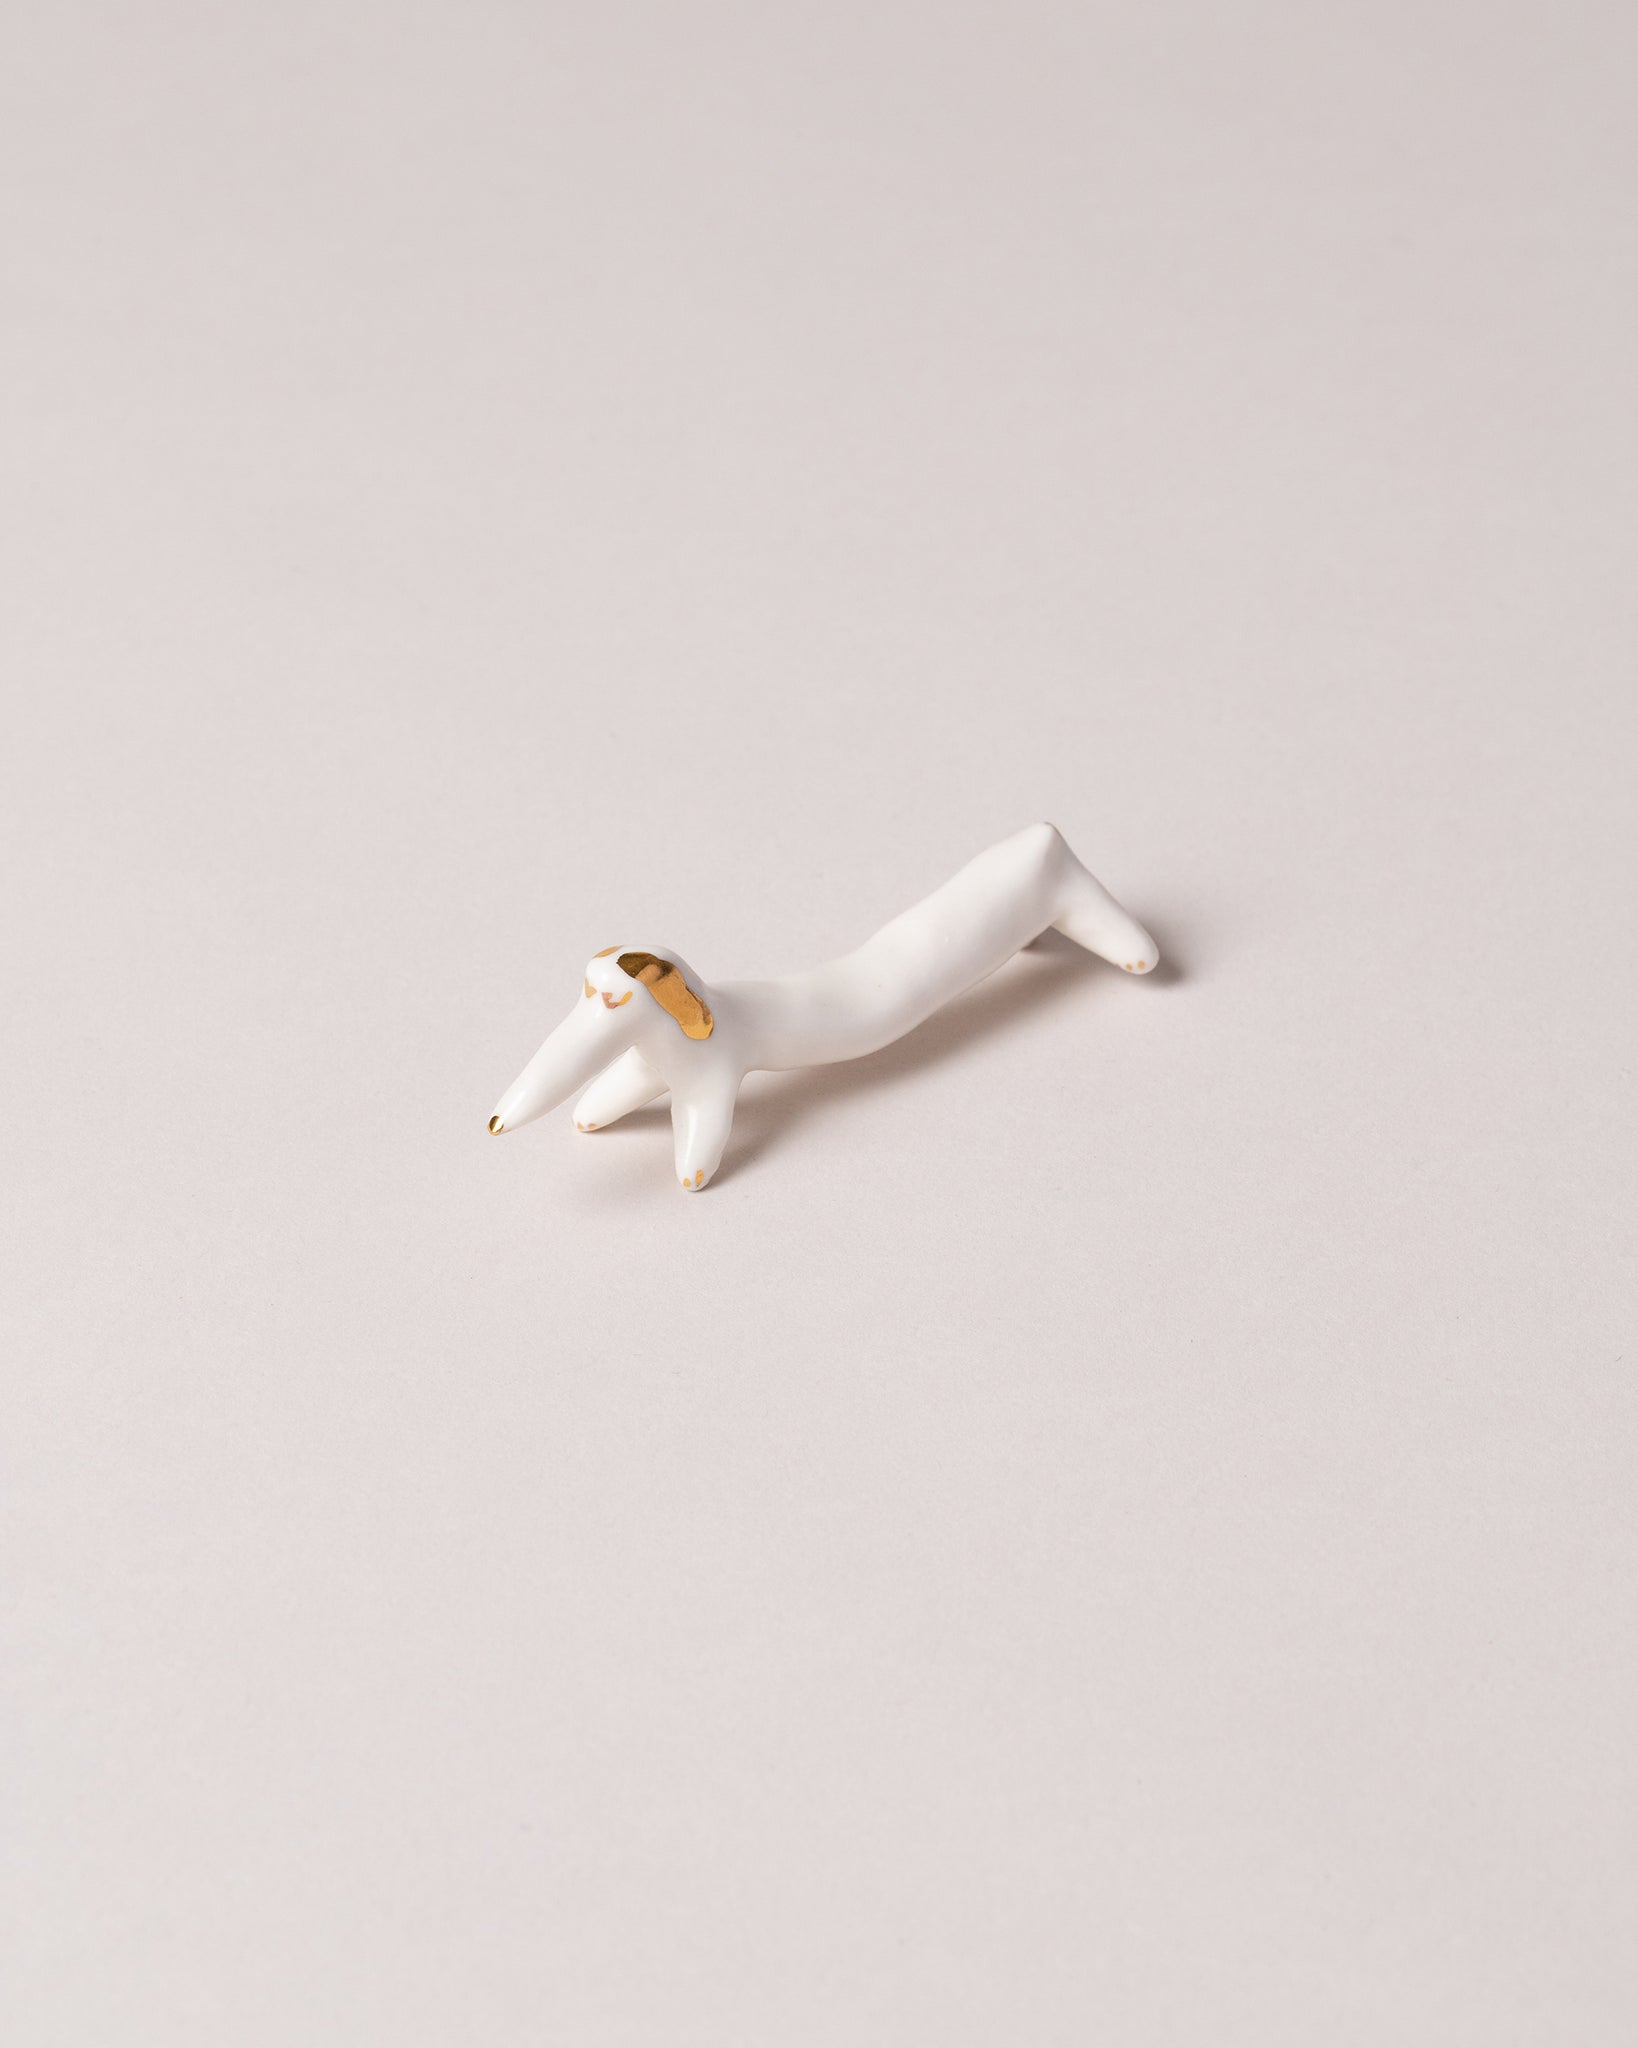 Chopstick Dog Rest Gold